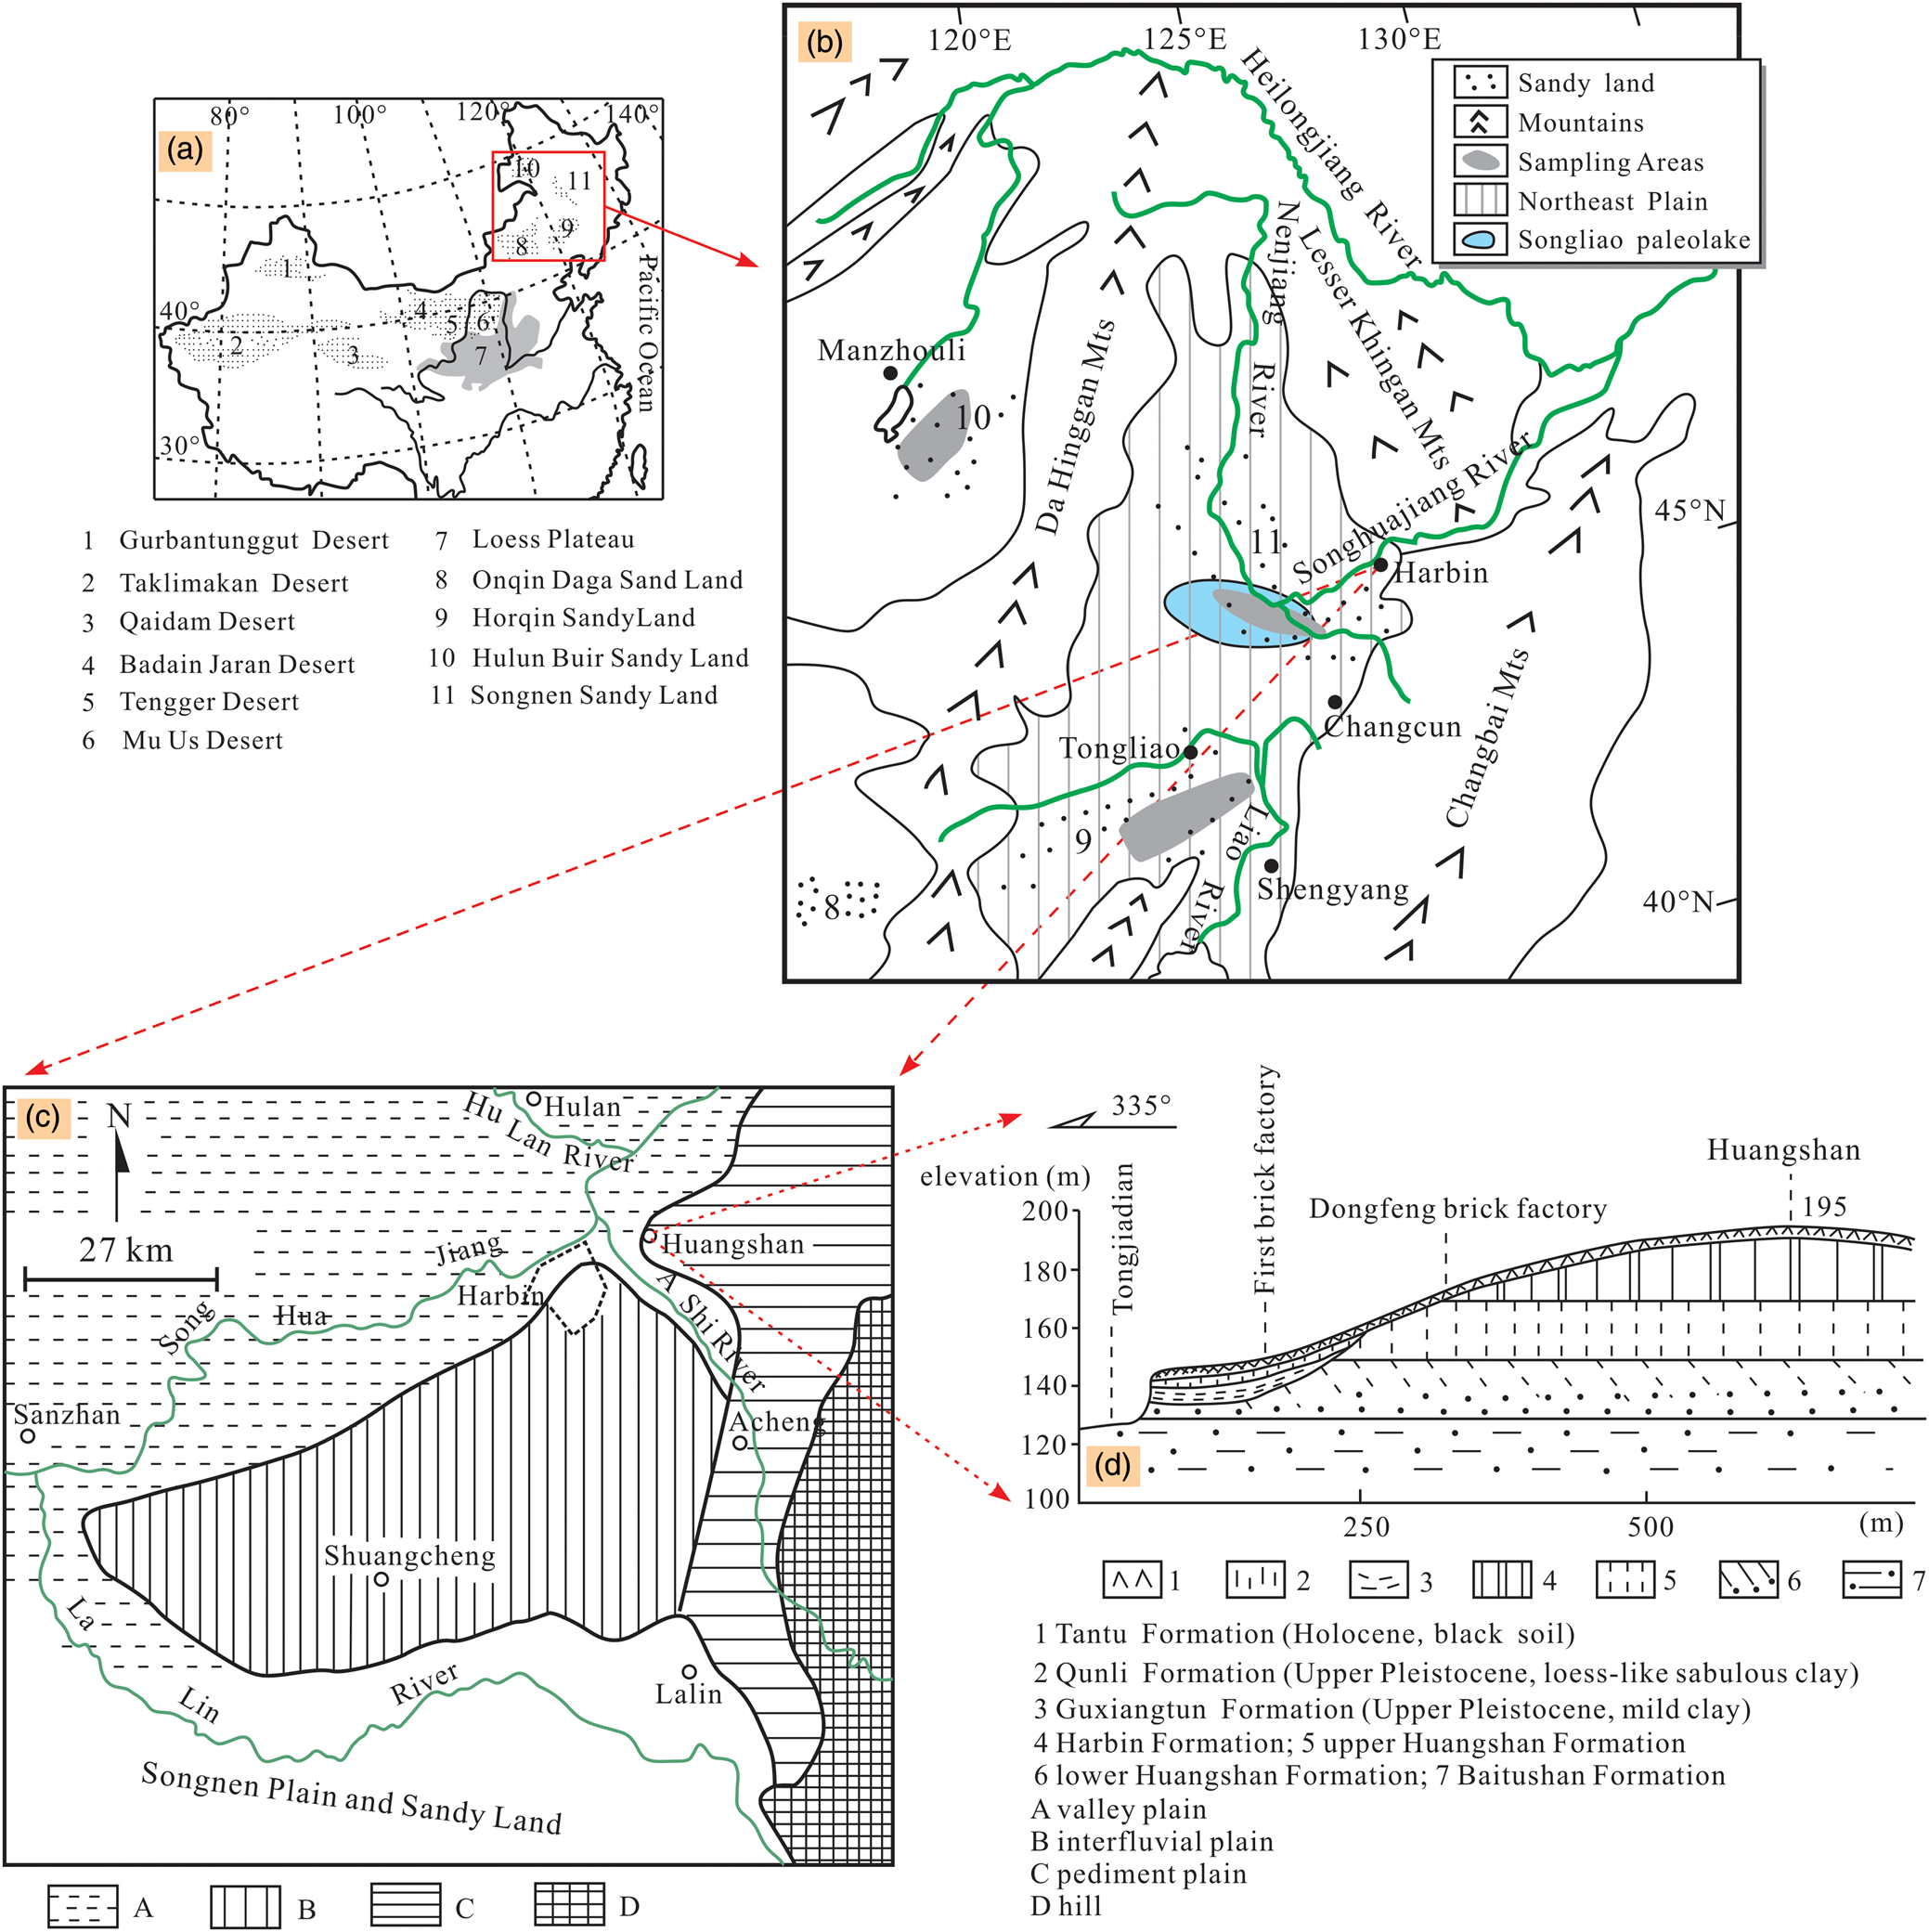 Geochemistry of loess deposits in northeastern China: constraint on ...